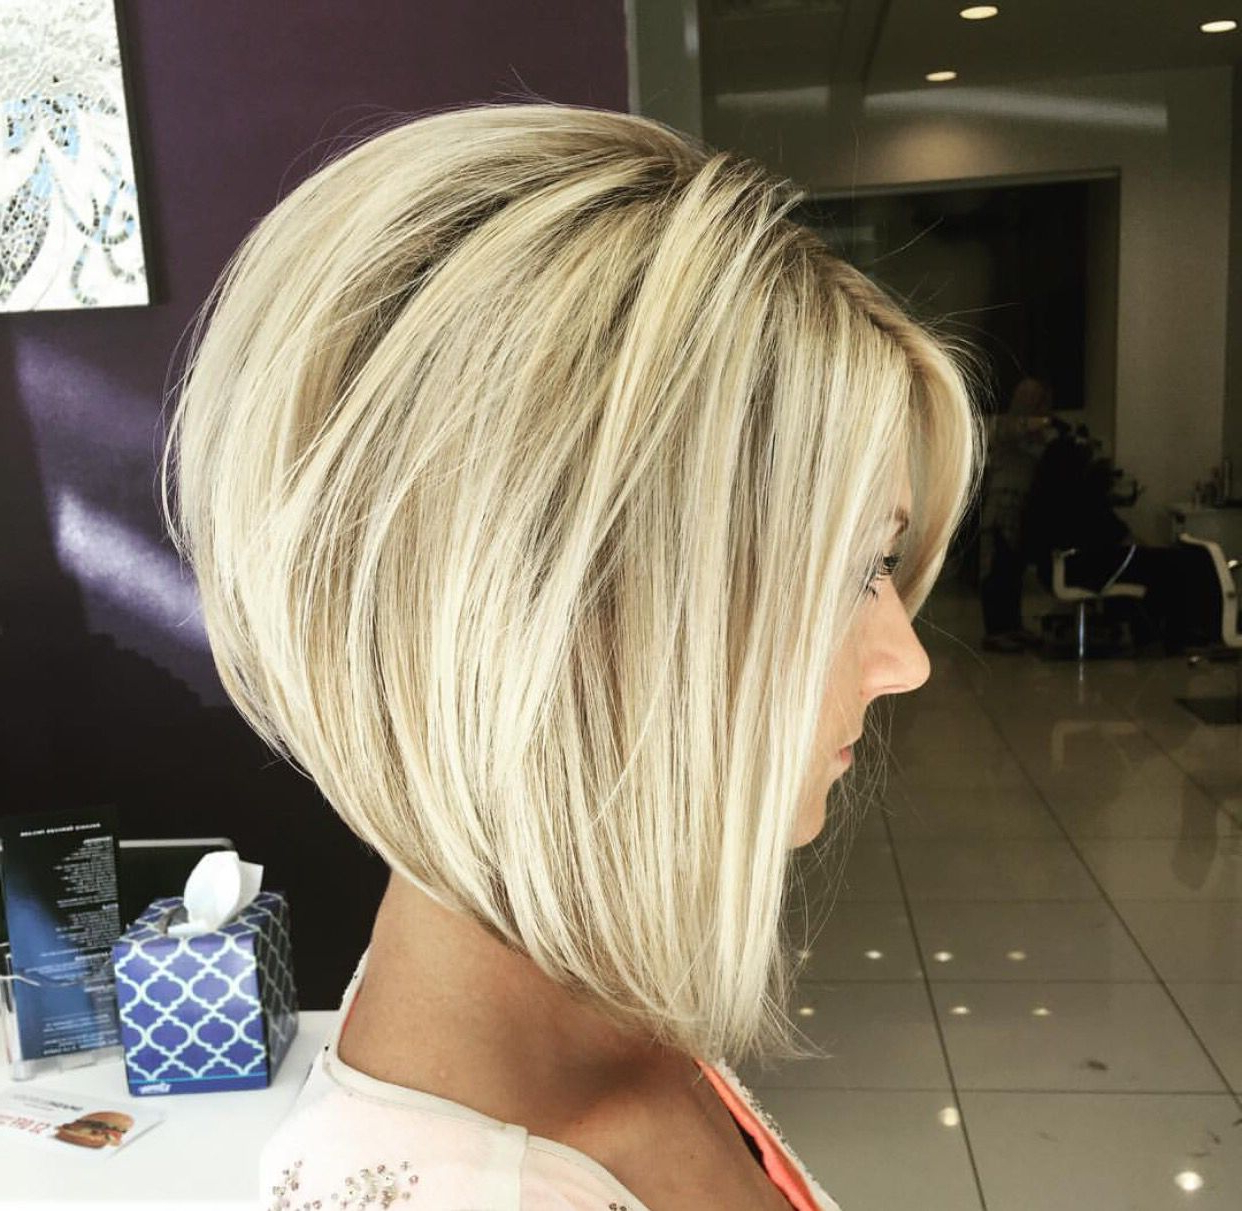 Best And Newest Long Feathered Bangs Hairstyles With Inverted Bob Within Pin On G E T • Y O U R • H A I R • D I D ♡ (View 18 of 20)